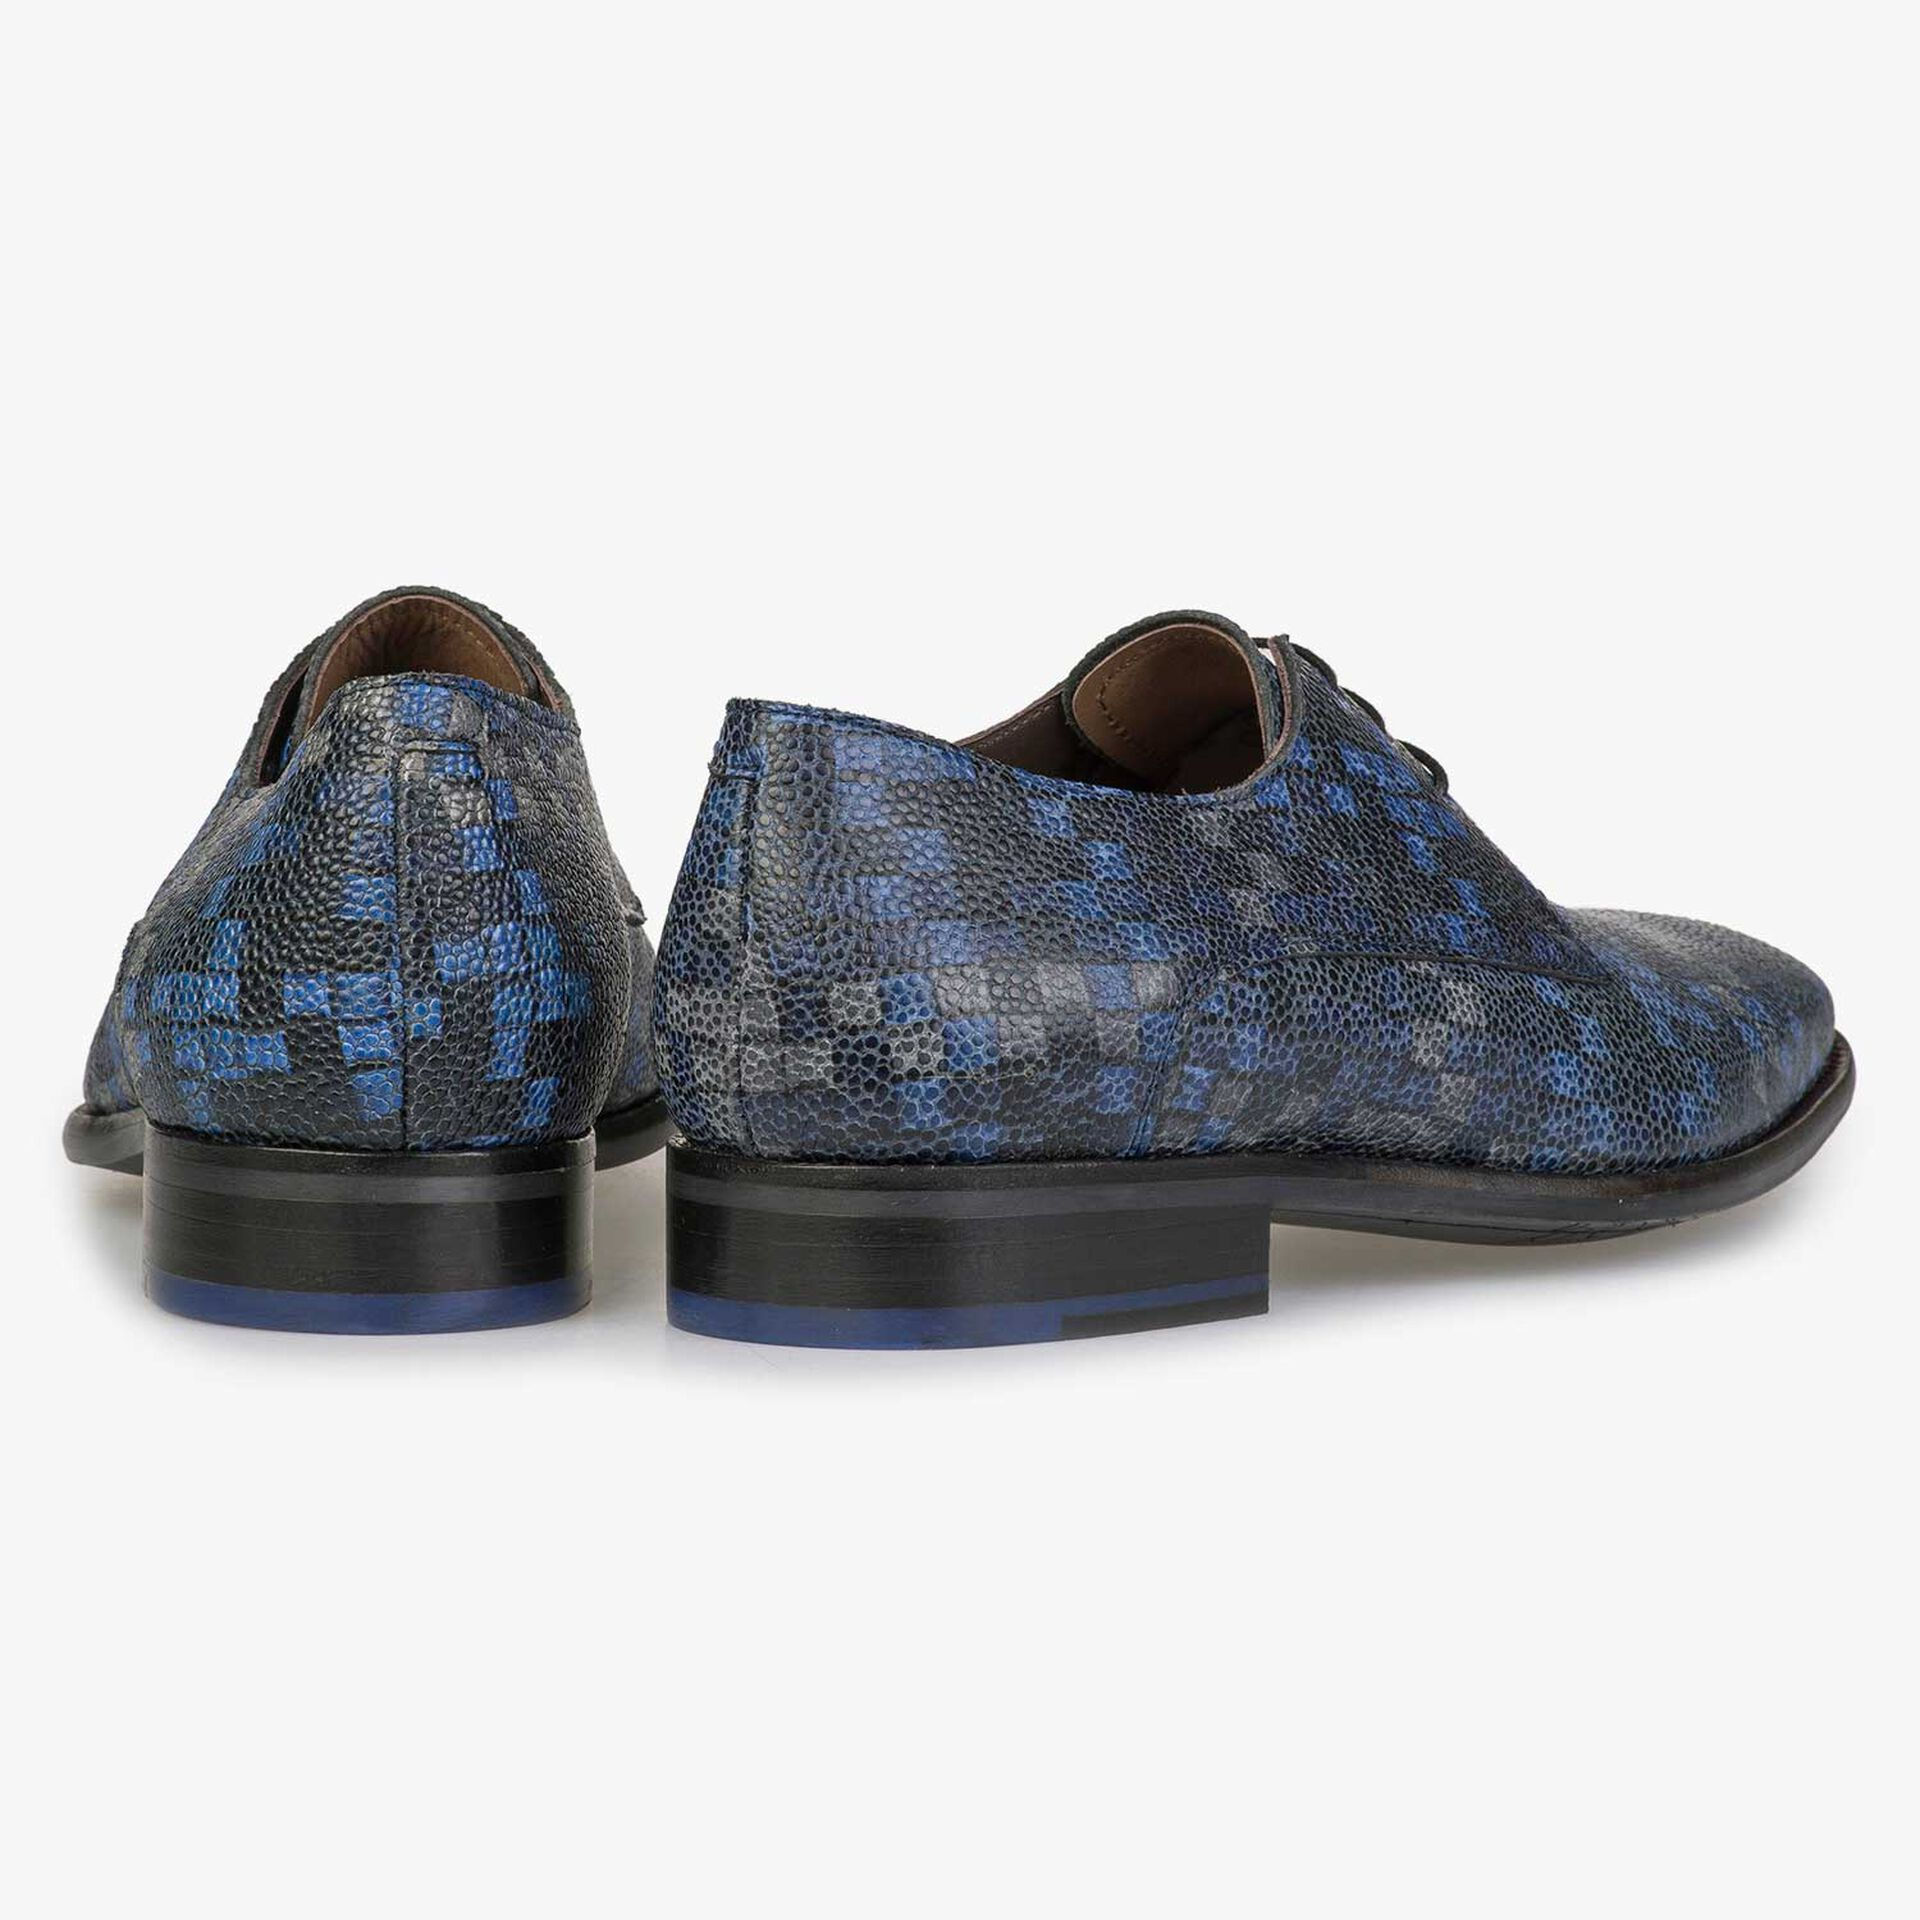 Blue lace shoe with graphic print